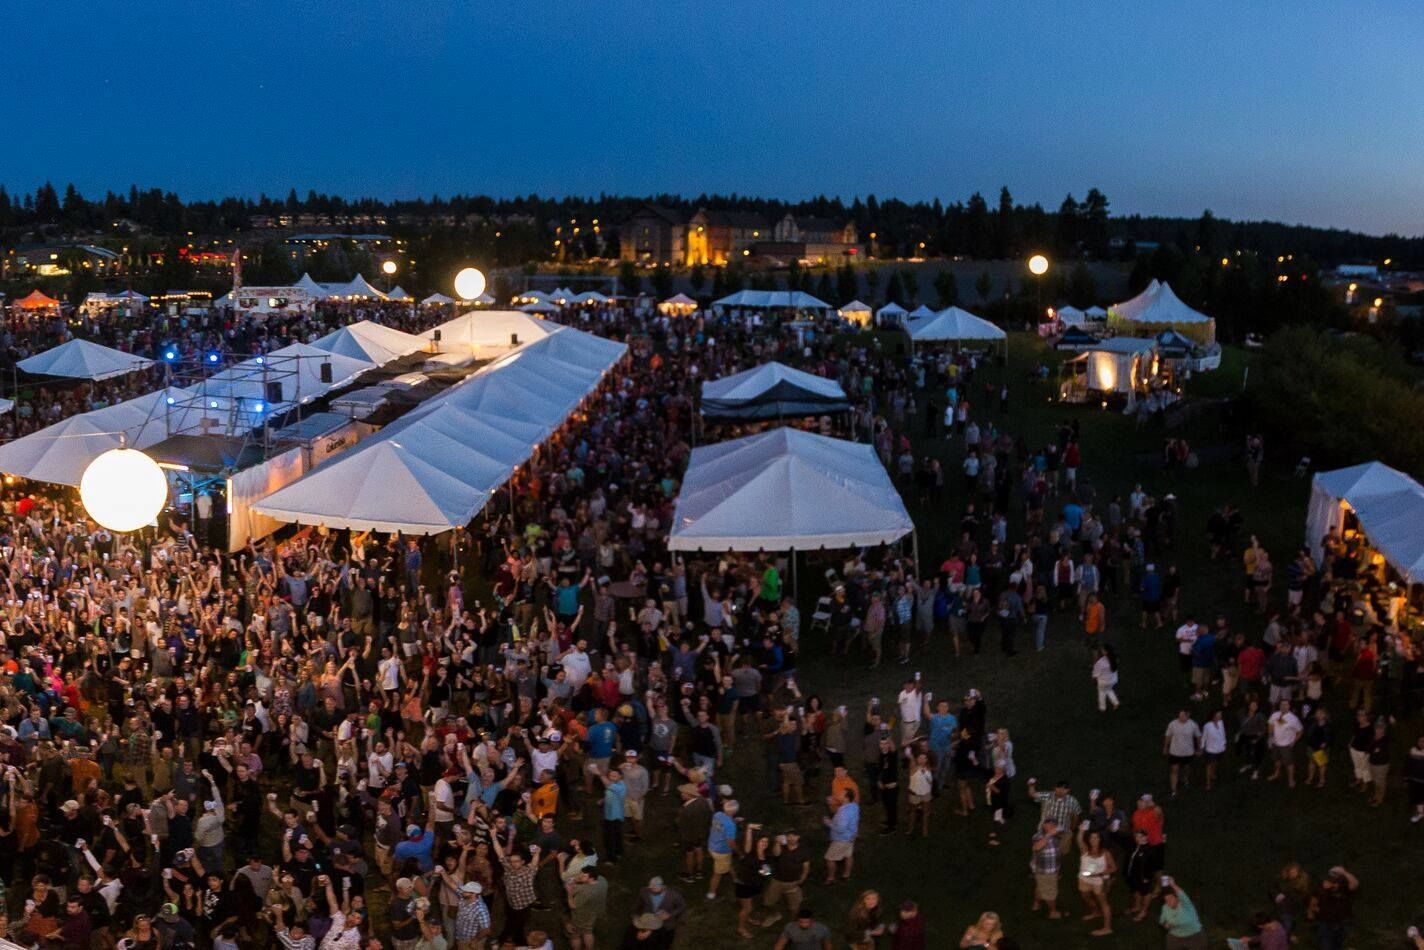 An image during the evening of the bend brewfest in bends old mill district. image courtesy of bend brewfest s8xhqd